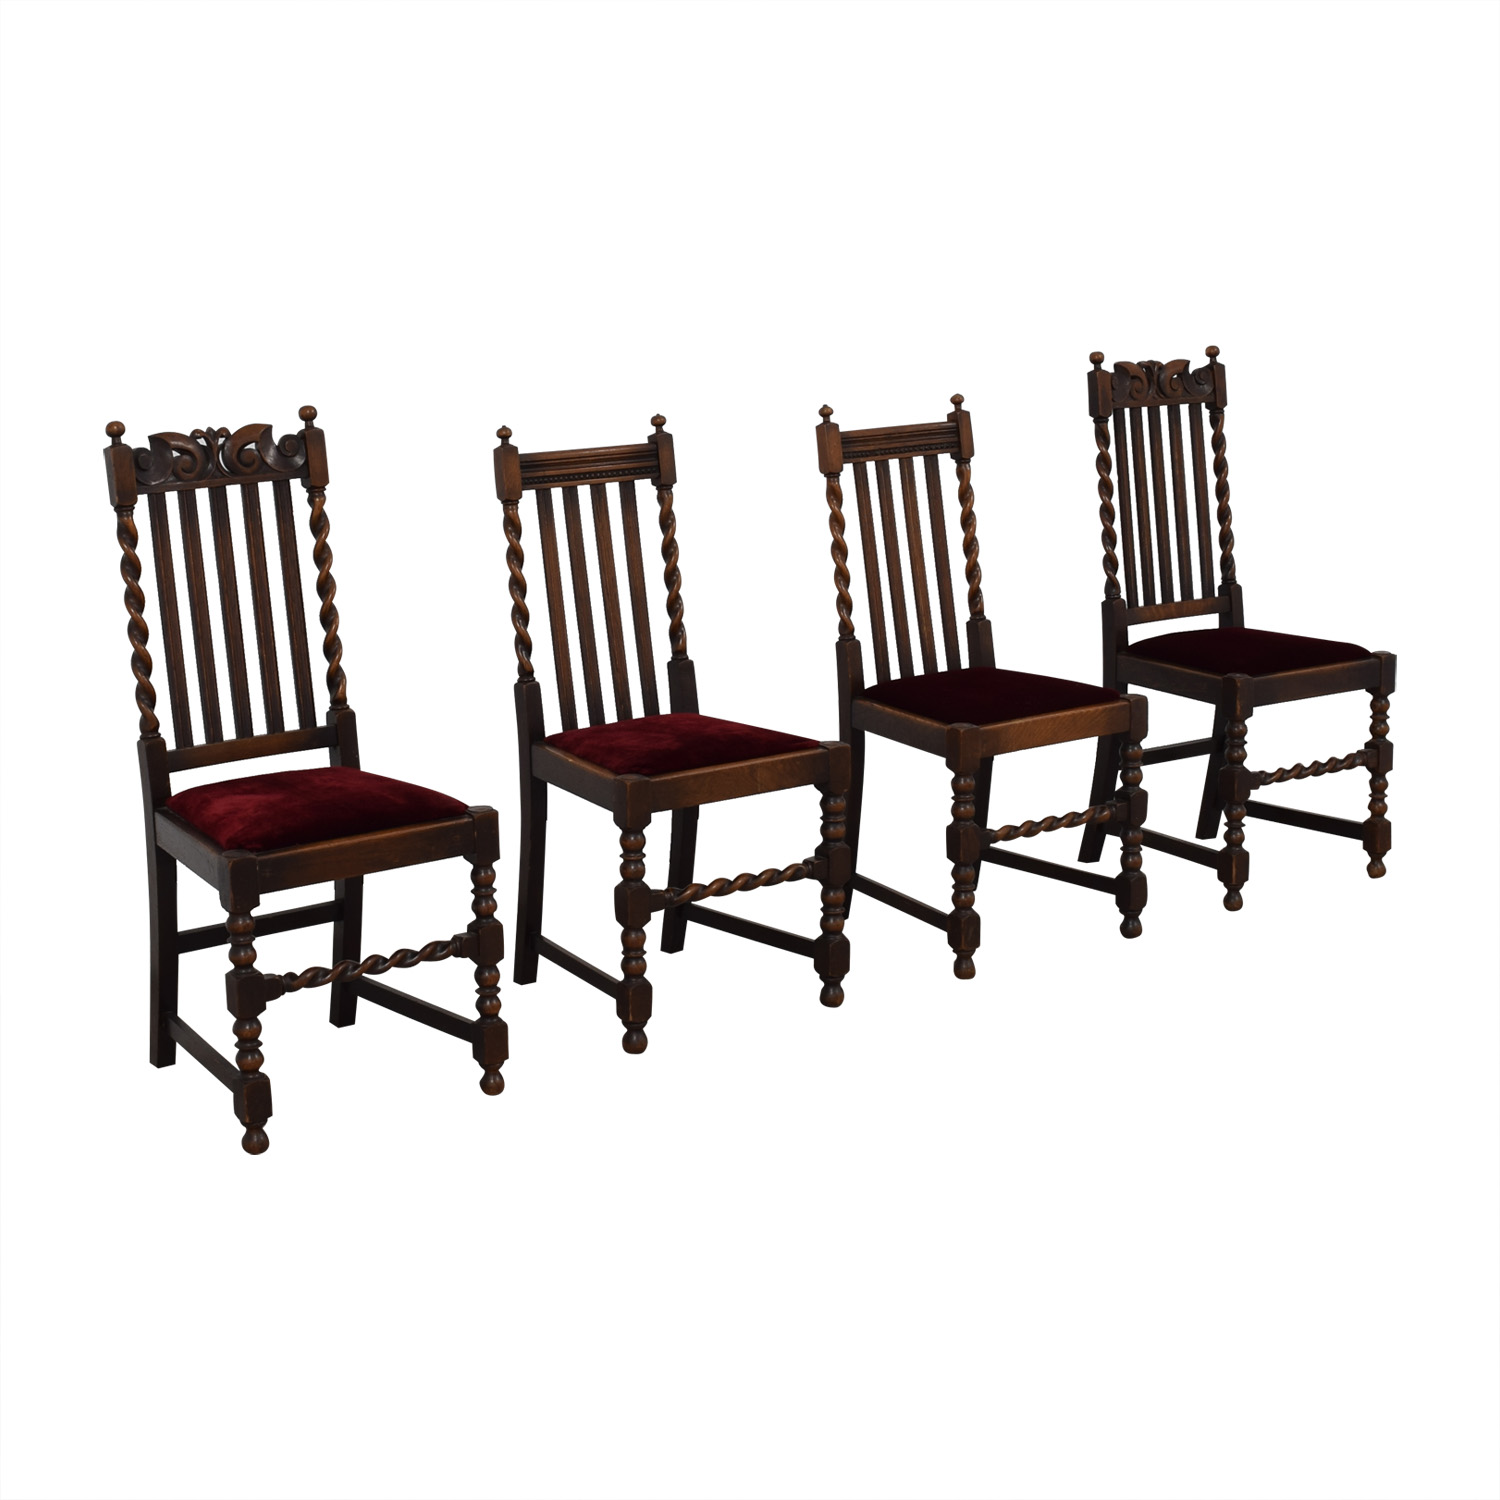 Jacobian Barley Twist Chairs Chairs